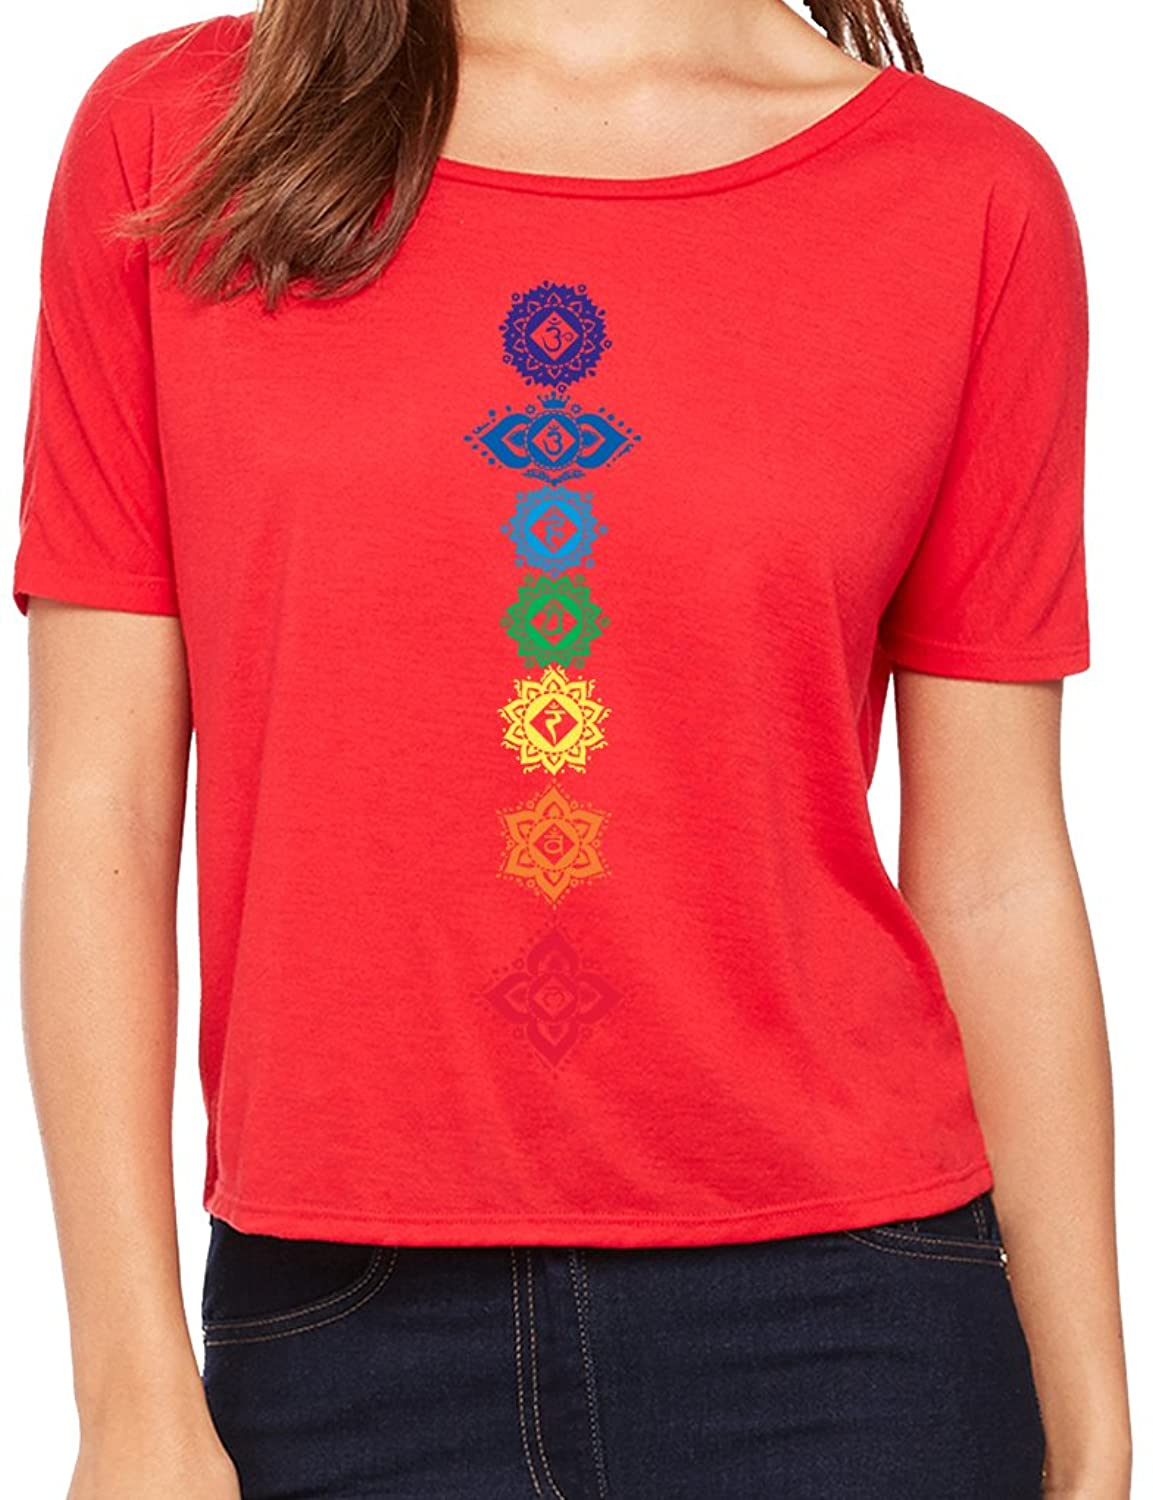 Yoga Clothing For You Ladies 7 Floral Chakras Open Back Shirt